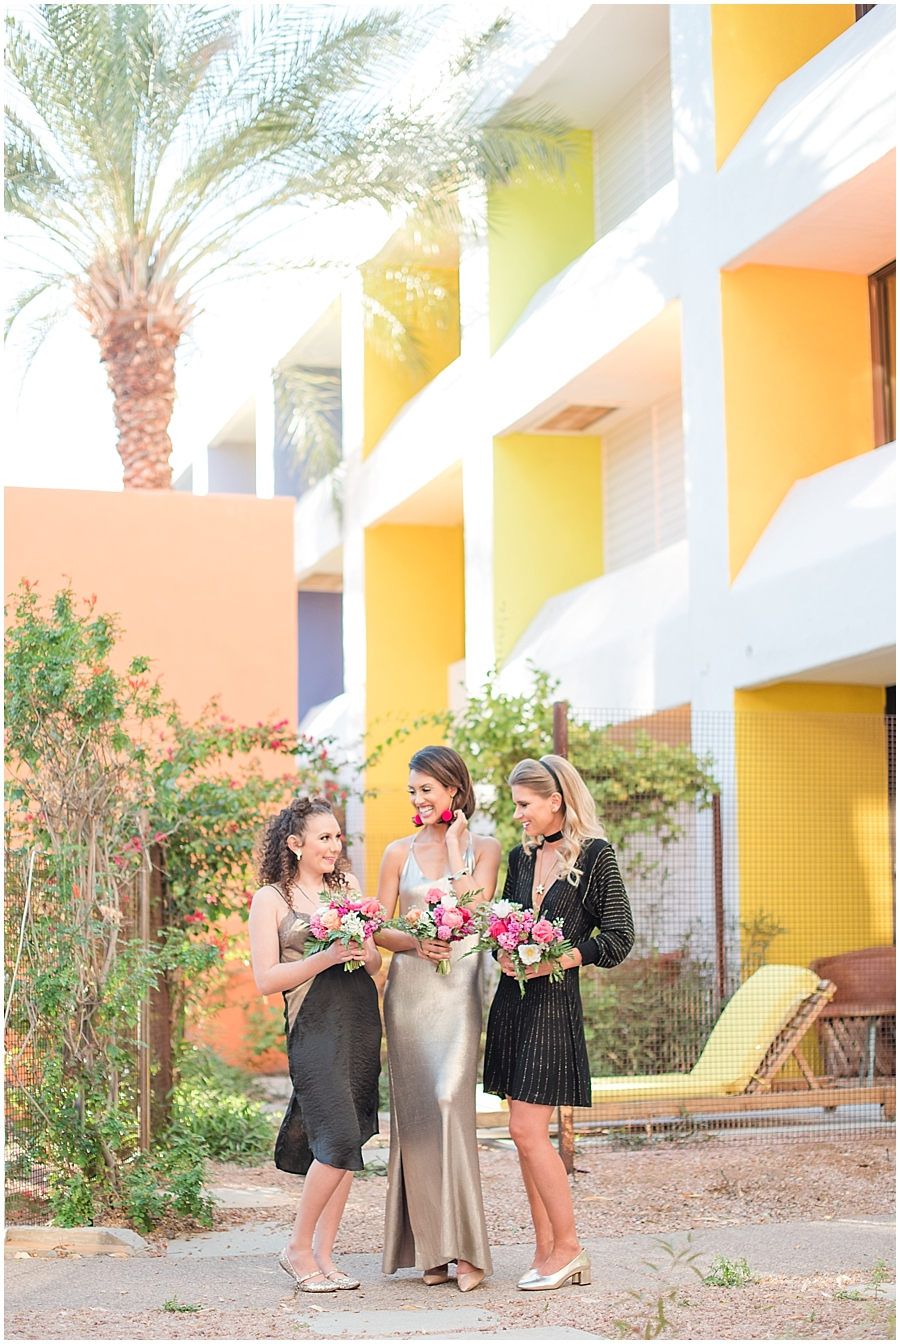 Gorgeous bridesmaids Rachele Harrison and Tatiana Bradasevic wearing fashions by Zara, hair and makeup done by Makiaj Beauty, and jewelry by @francesvintage. Photos taking by Jade Min Photography at The Saguaro Scottsdale.